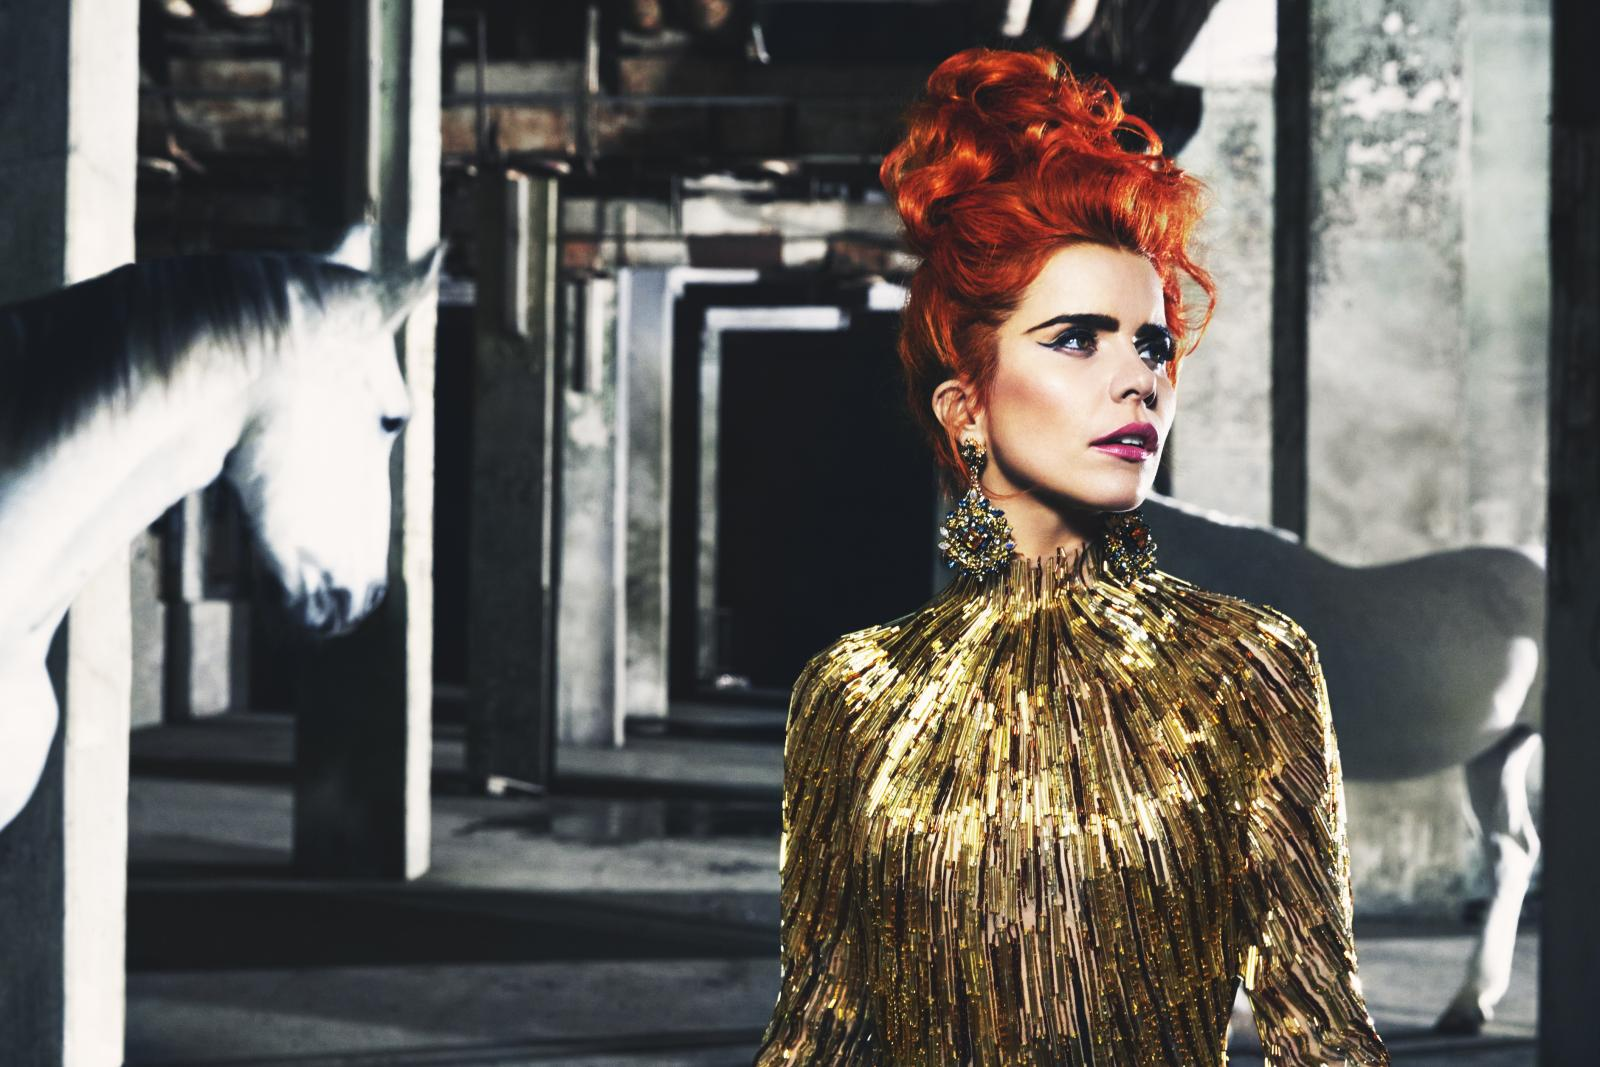 Paloma Faith: Quem é? + Playlist